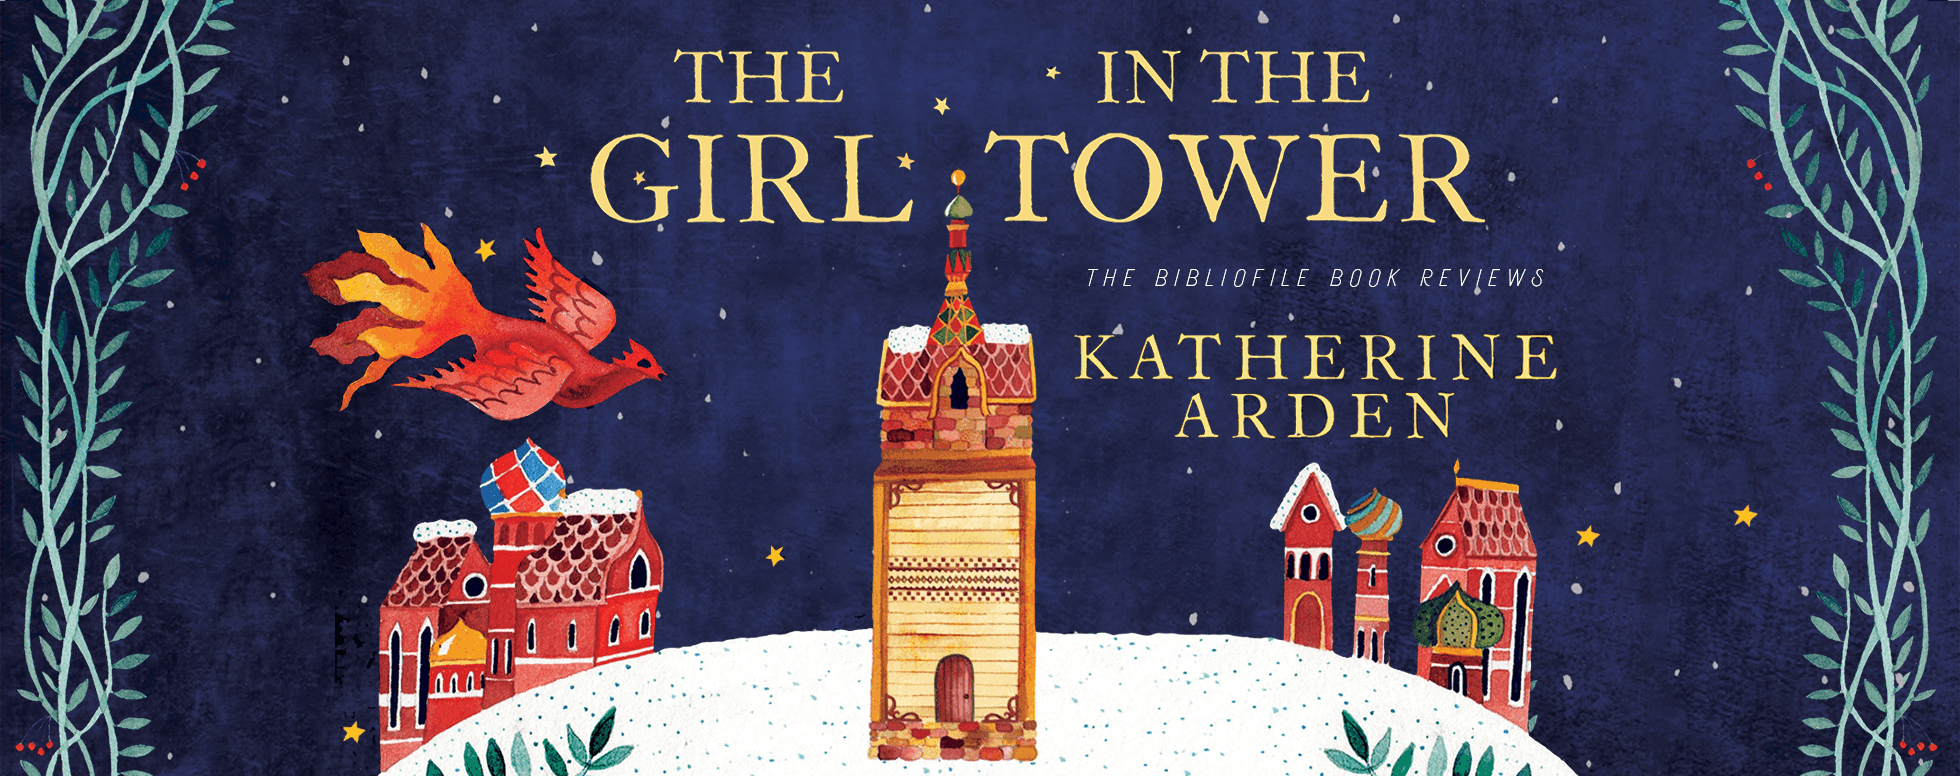 The Girl in the Tower by Katherine Arden Winternight